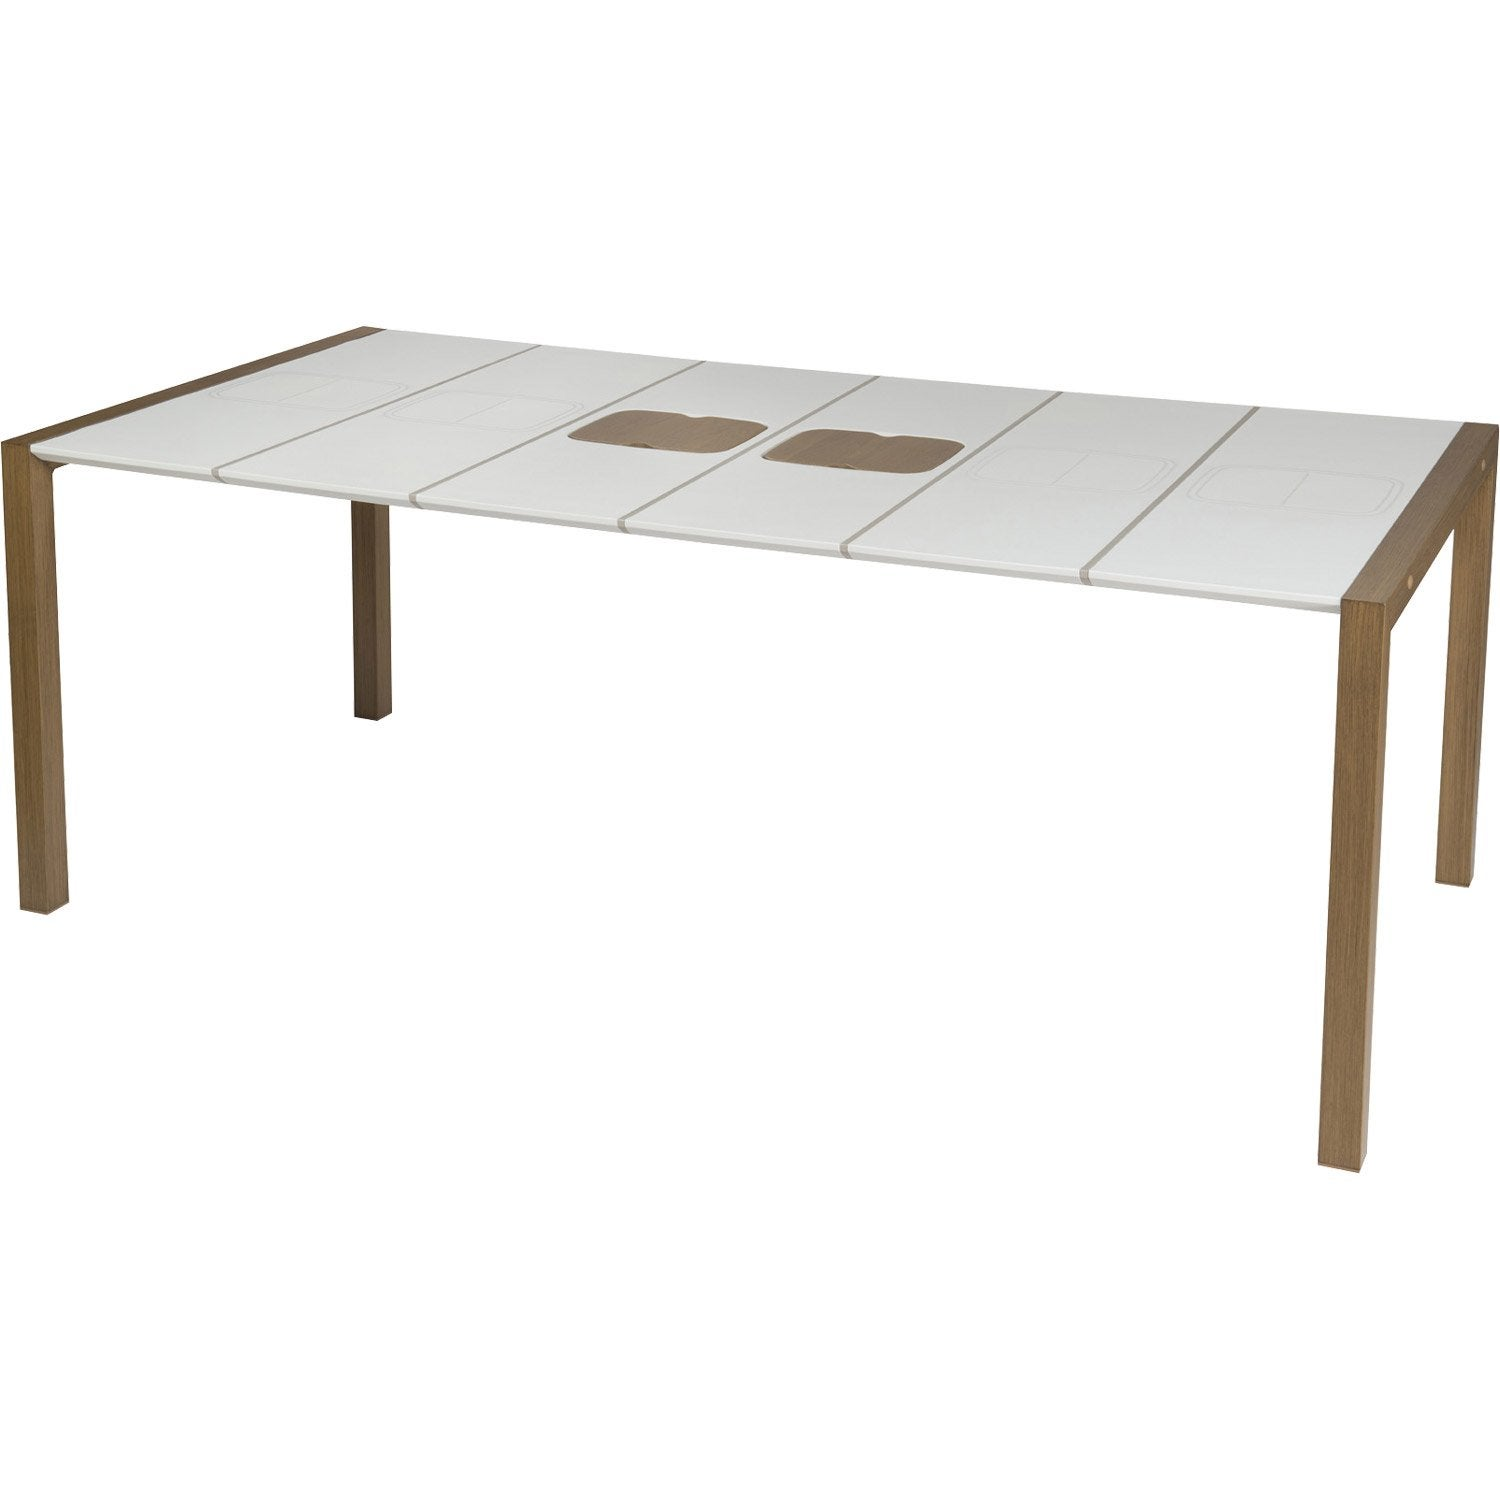 Table de jardin brico depot table bois table de jardin en for Bricodepot mesa jardin